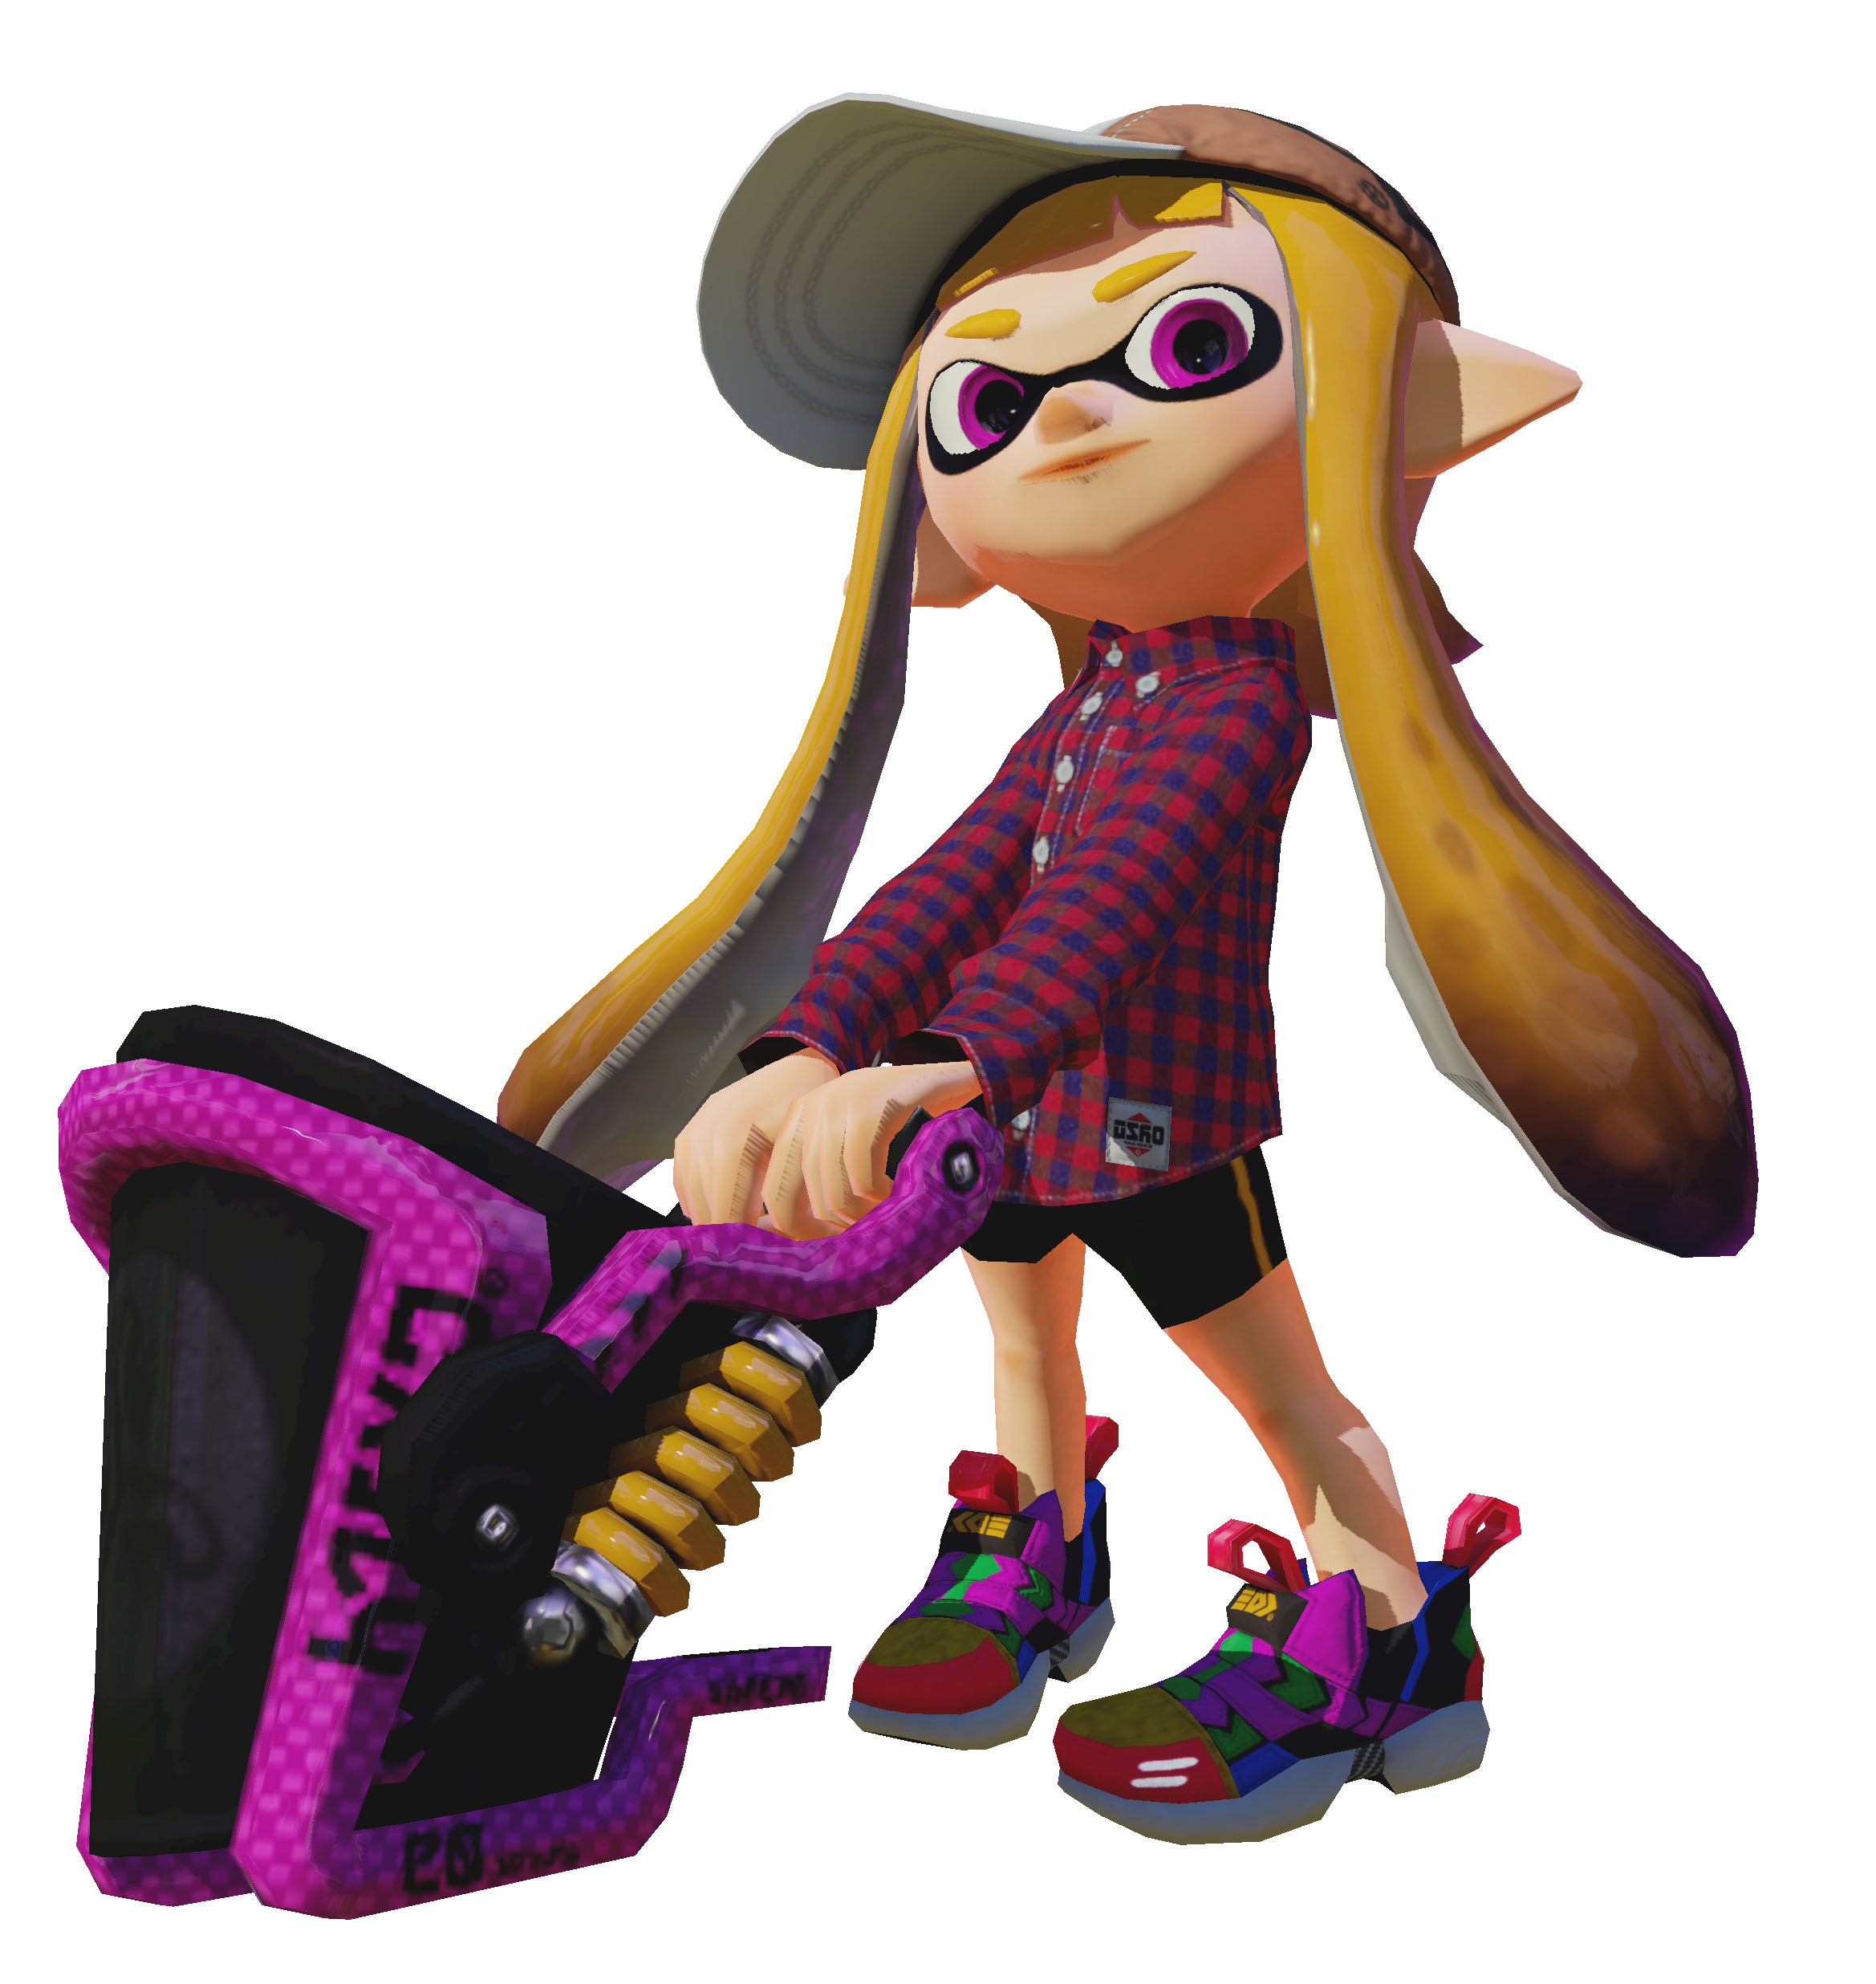 WiiU_Splatoon_artwork_Slosher.jpg